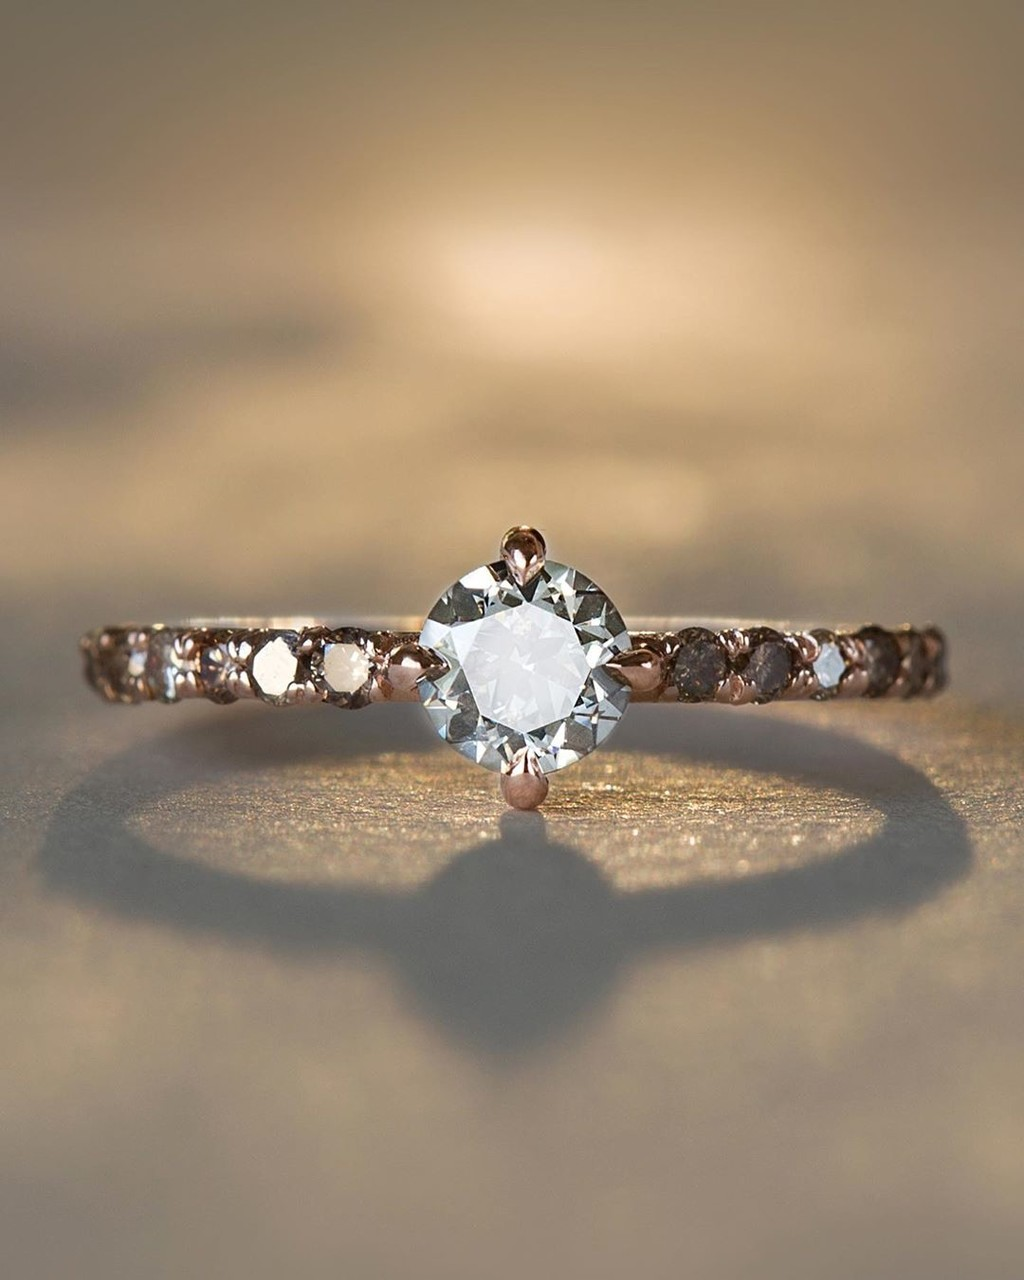 Funky, Sweet, & Unique describe this simply glowing diamond studded solitaire. A center transitional brilliant post-consumer Diamond